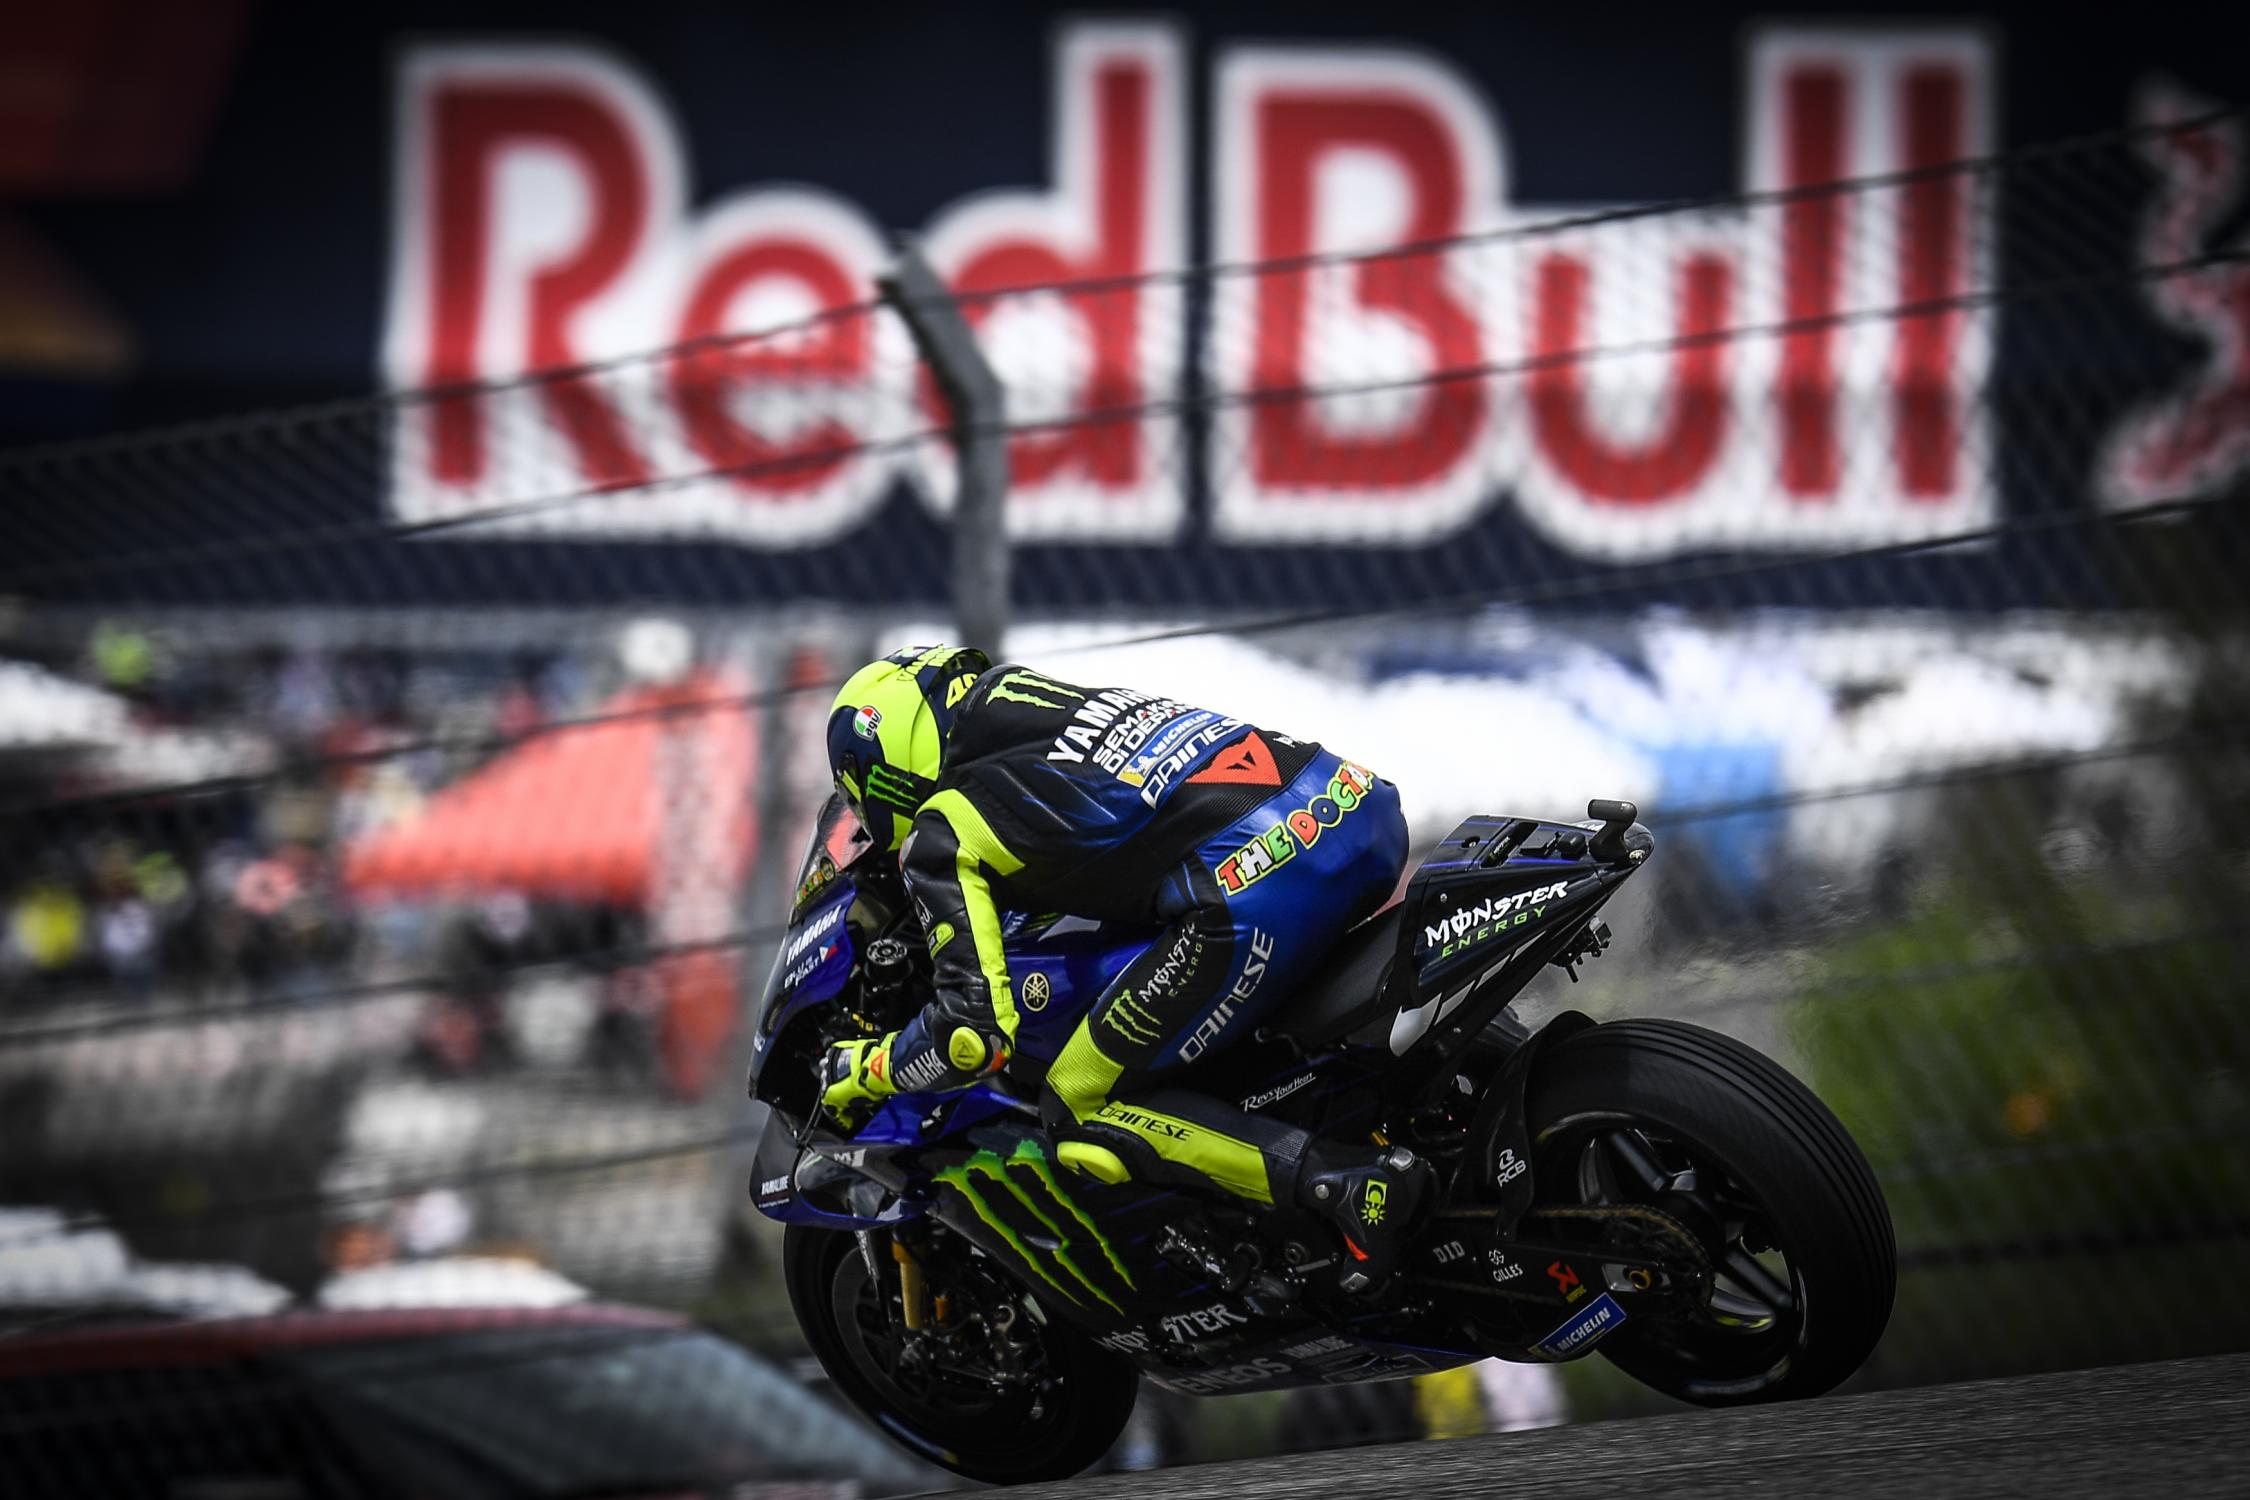 MotoGP : Grand Prix Of The Americas Postponed Due To Coronavirus